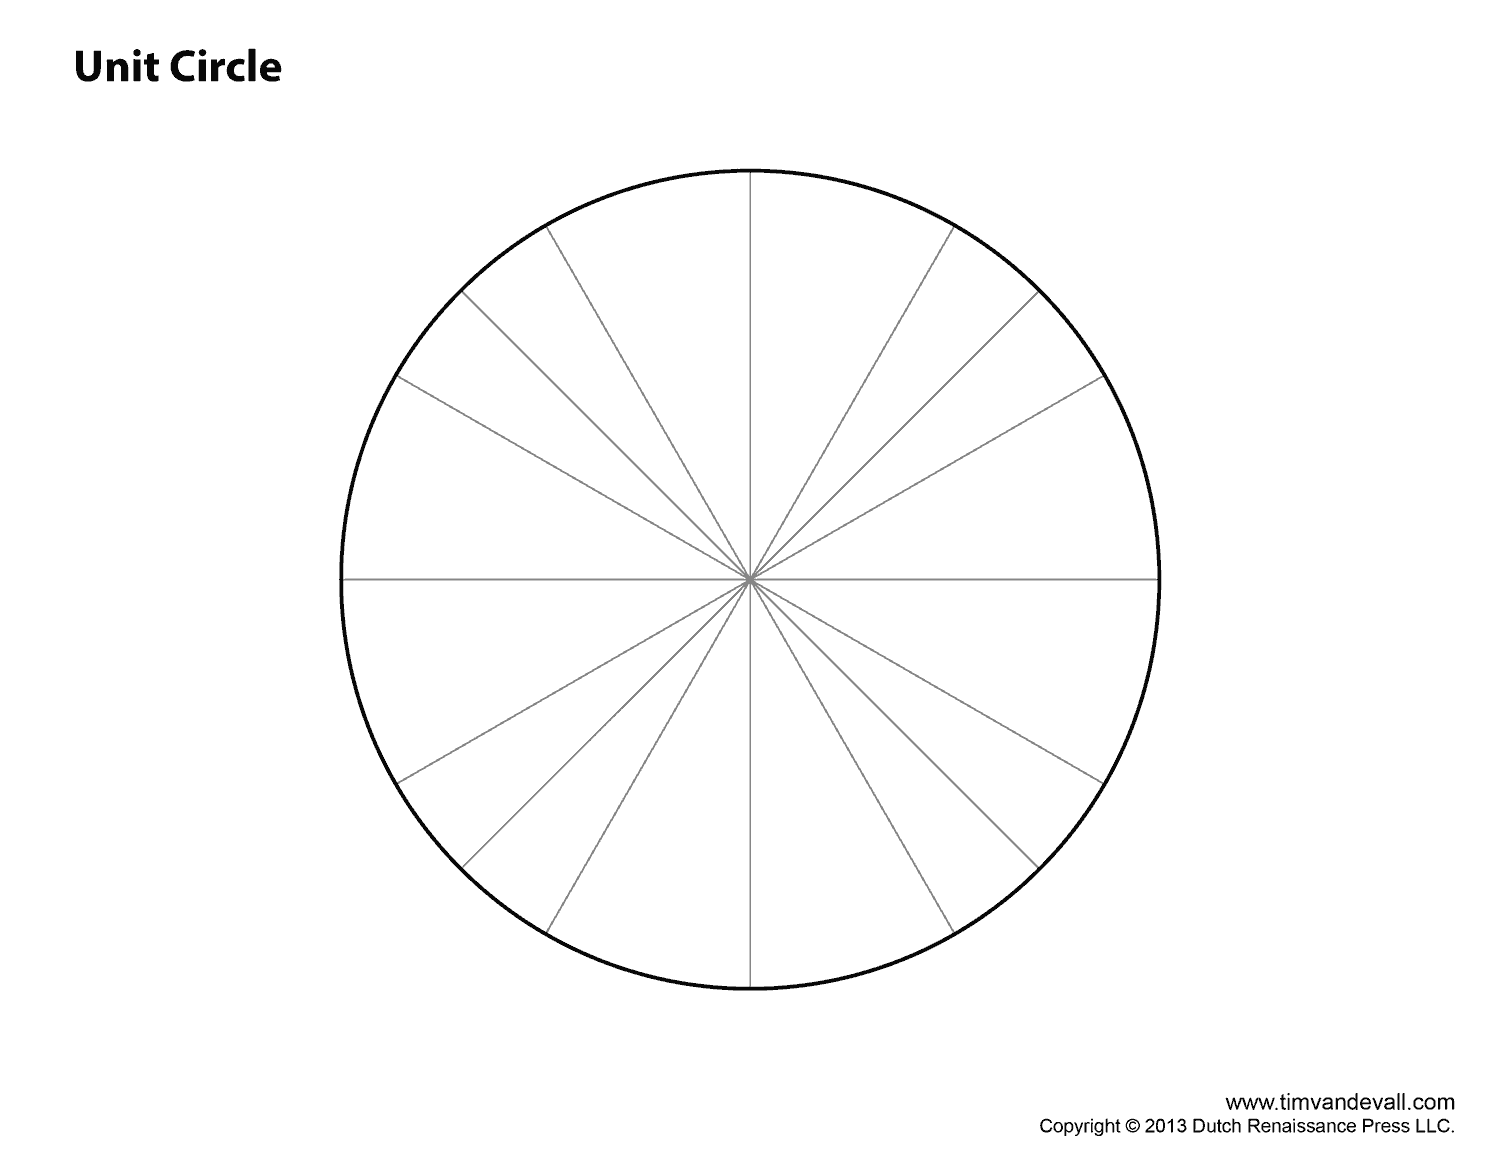 Fabulous Unit Circle Printable